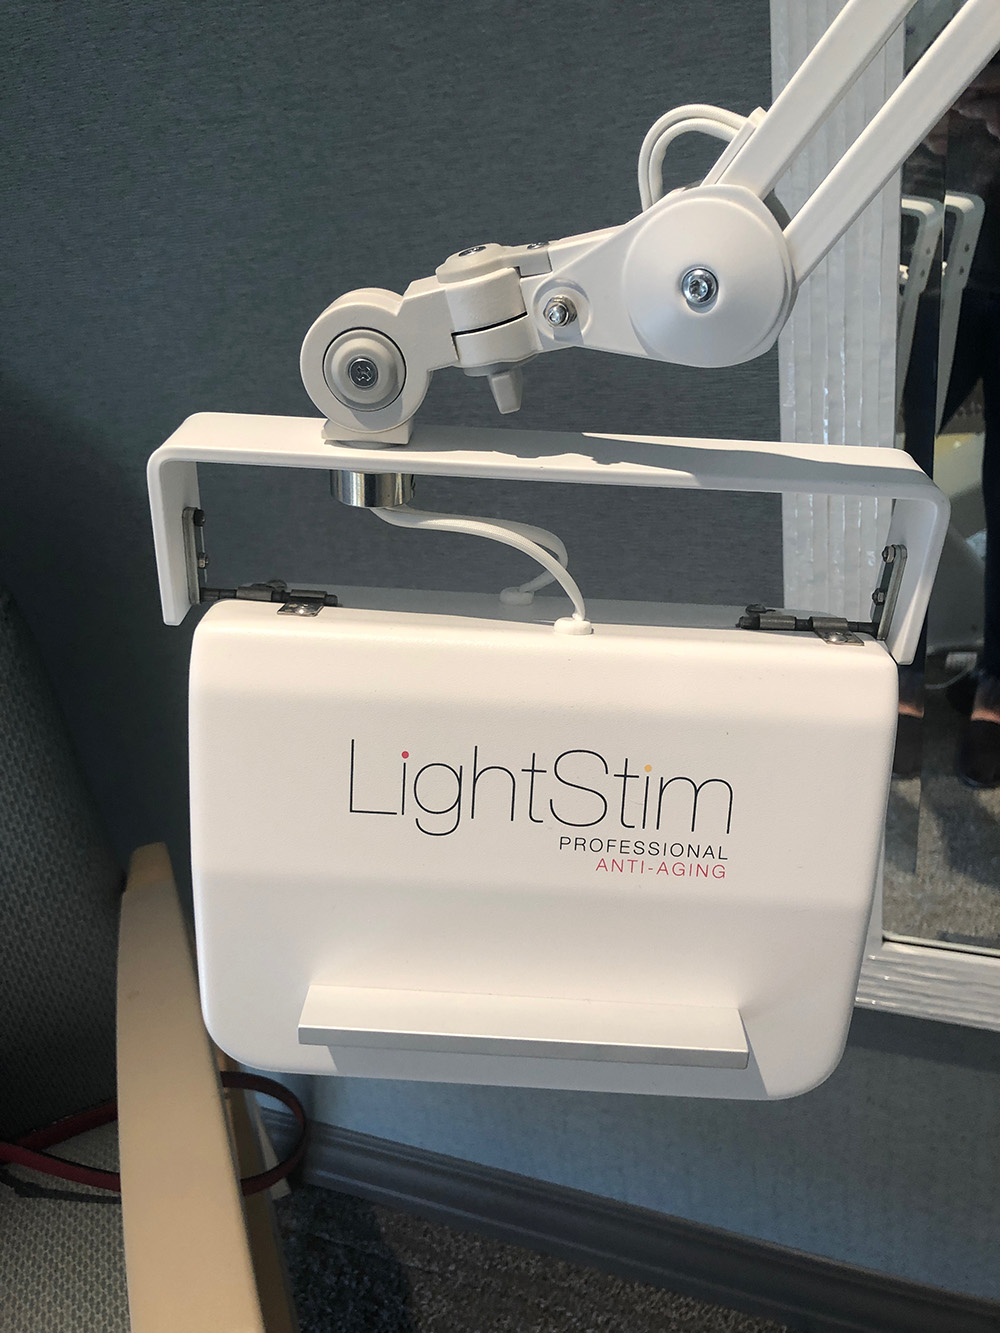 The LightStim Anti-Aging Light treats signs of aging such as fine lines, wrinkles and dark circles.